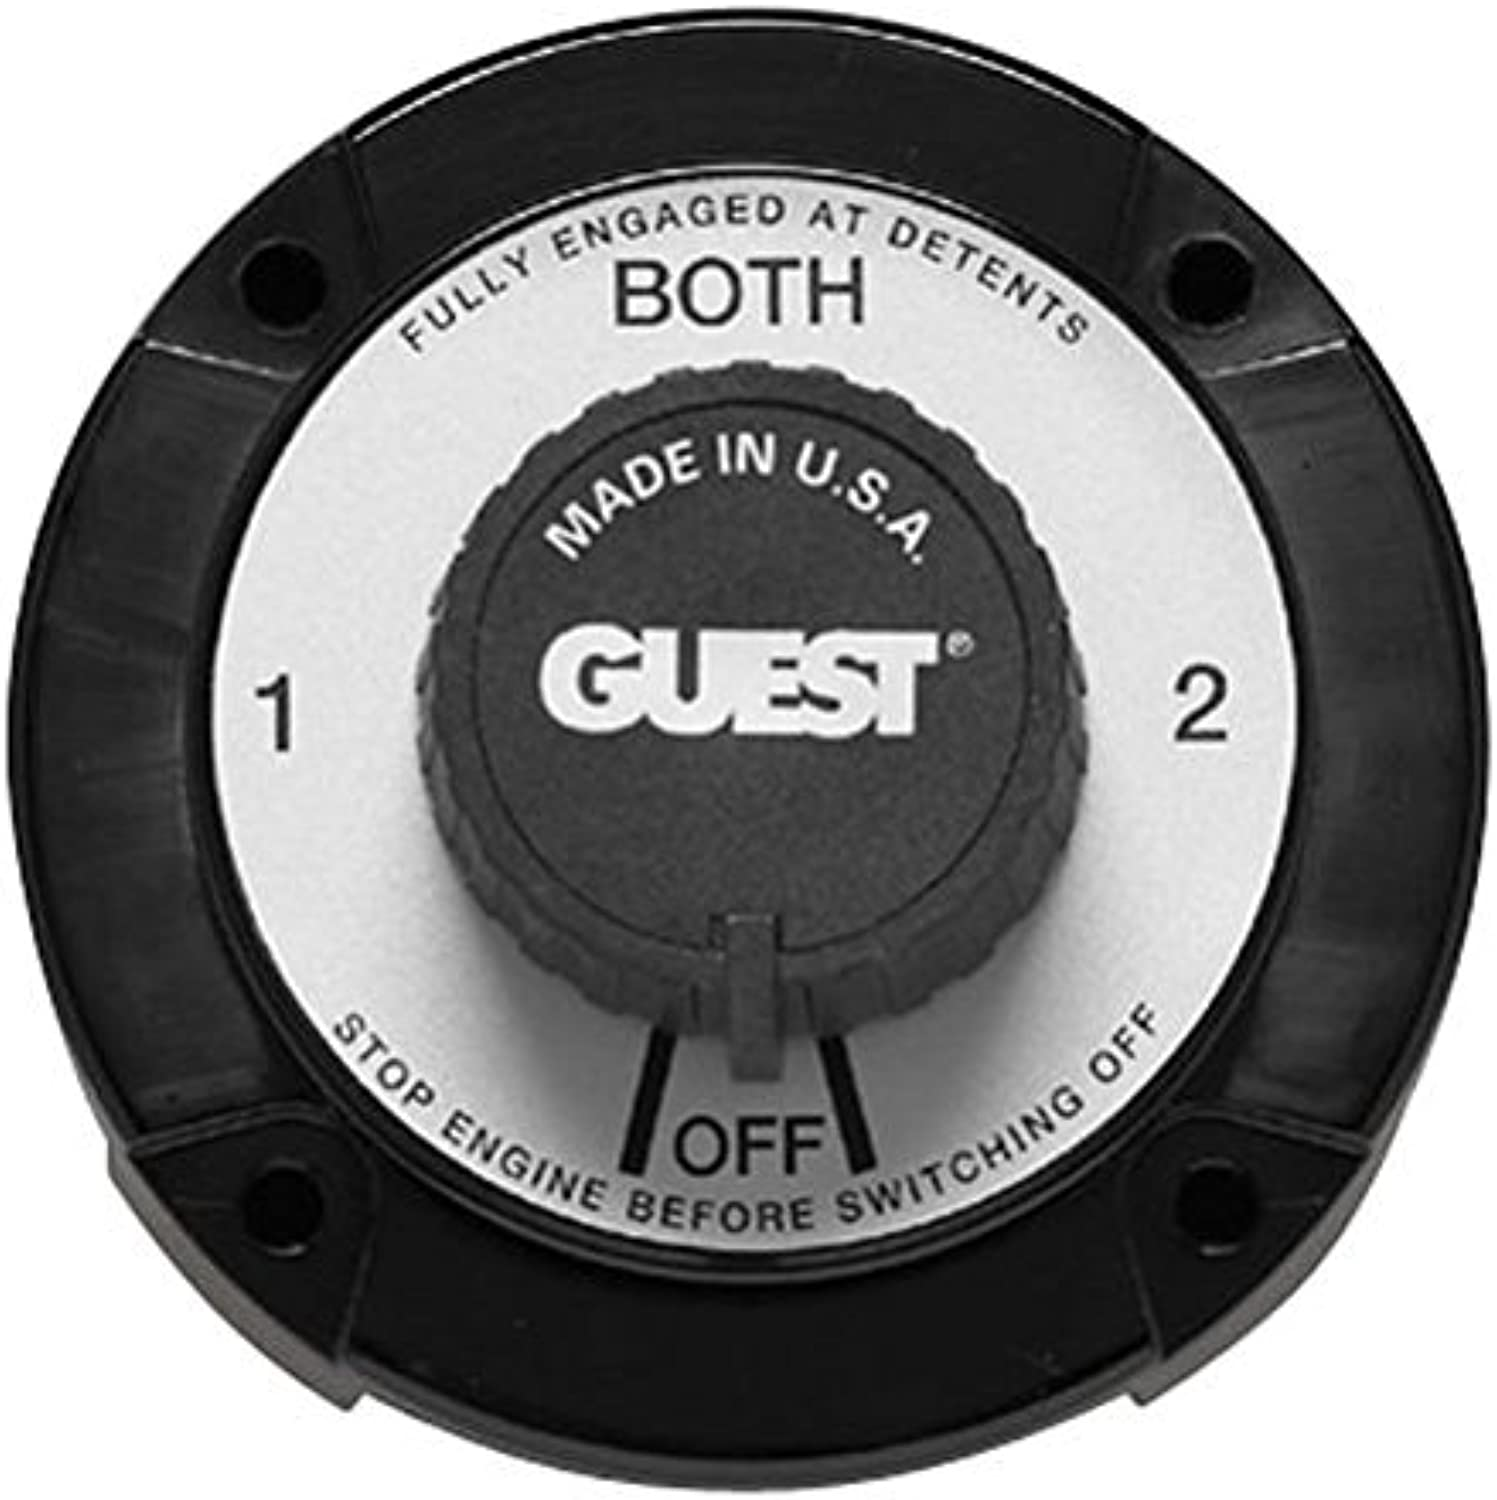 Guest 2110A Universal Mount Marine Battery Selector Switch With Alternator Field Disconnect (230 Continuous, 345 Momentary Amps)